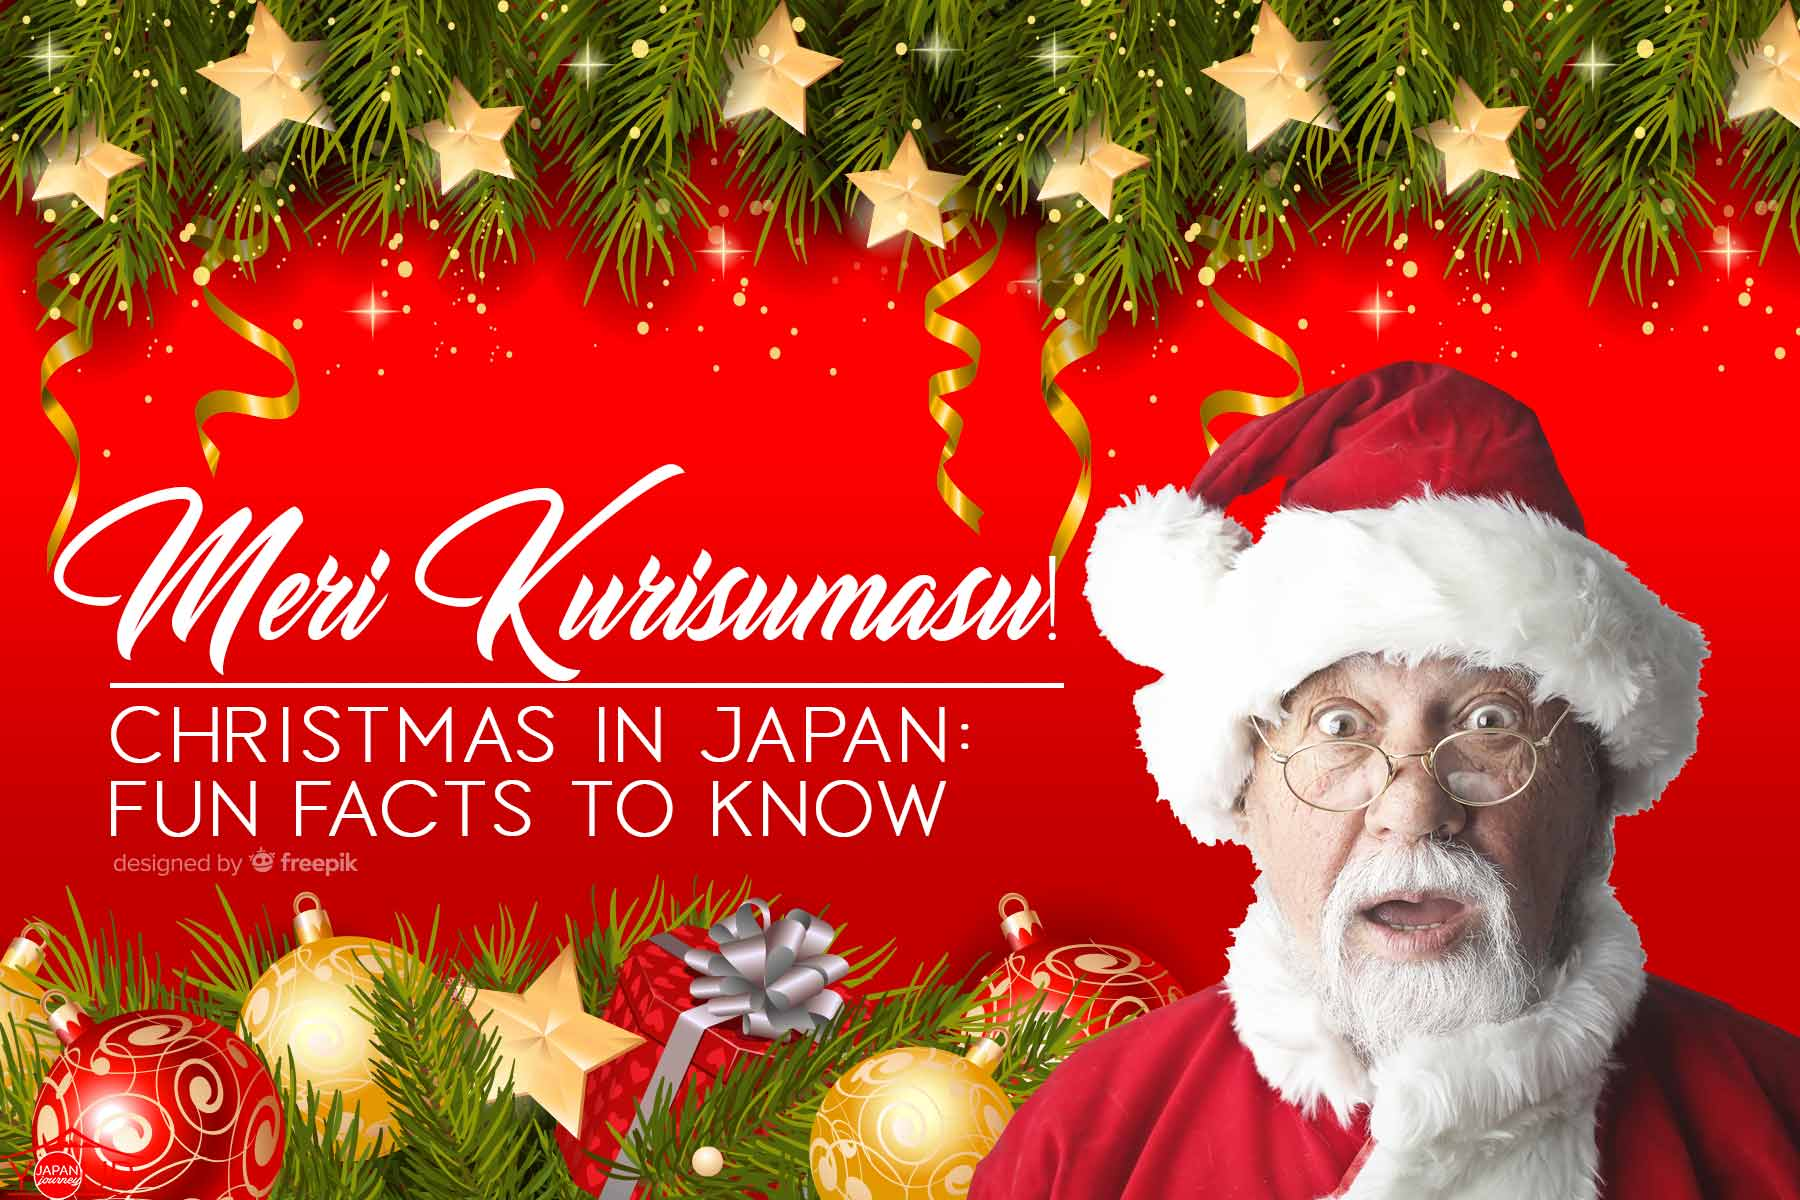 Christmas in Japan: Fun Facts to Know